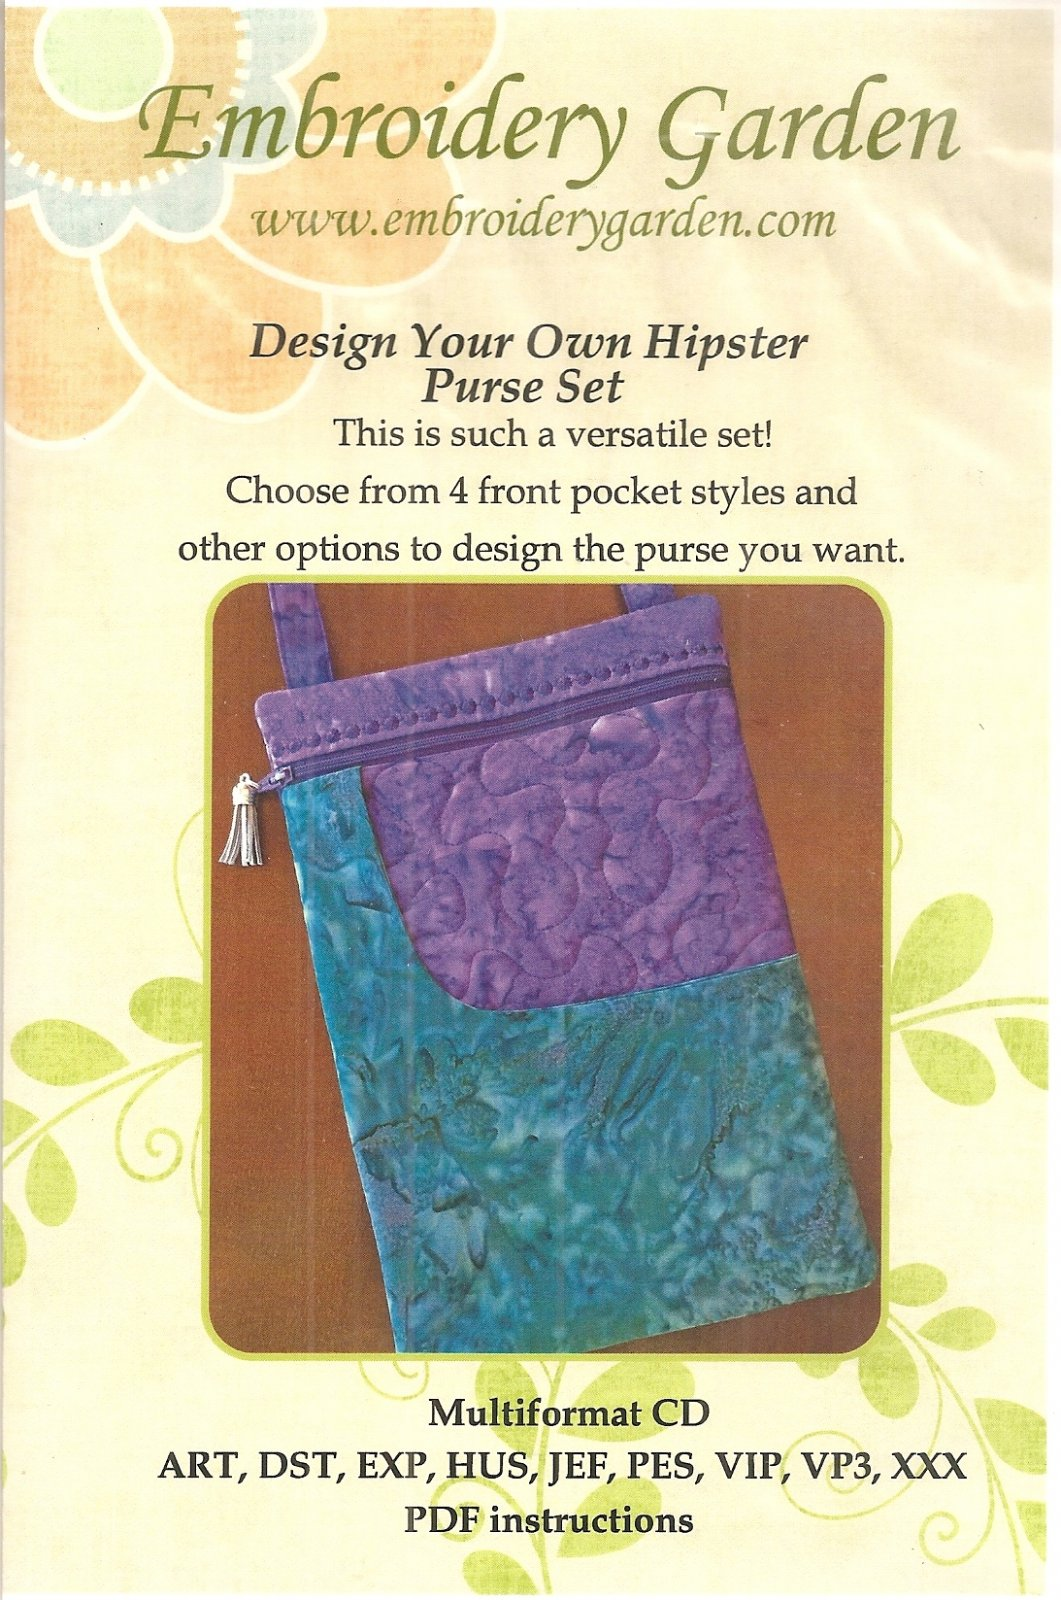 Design Your Own Hipster Purse Set